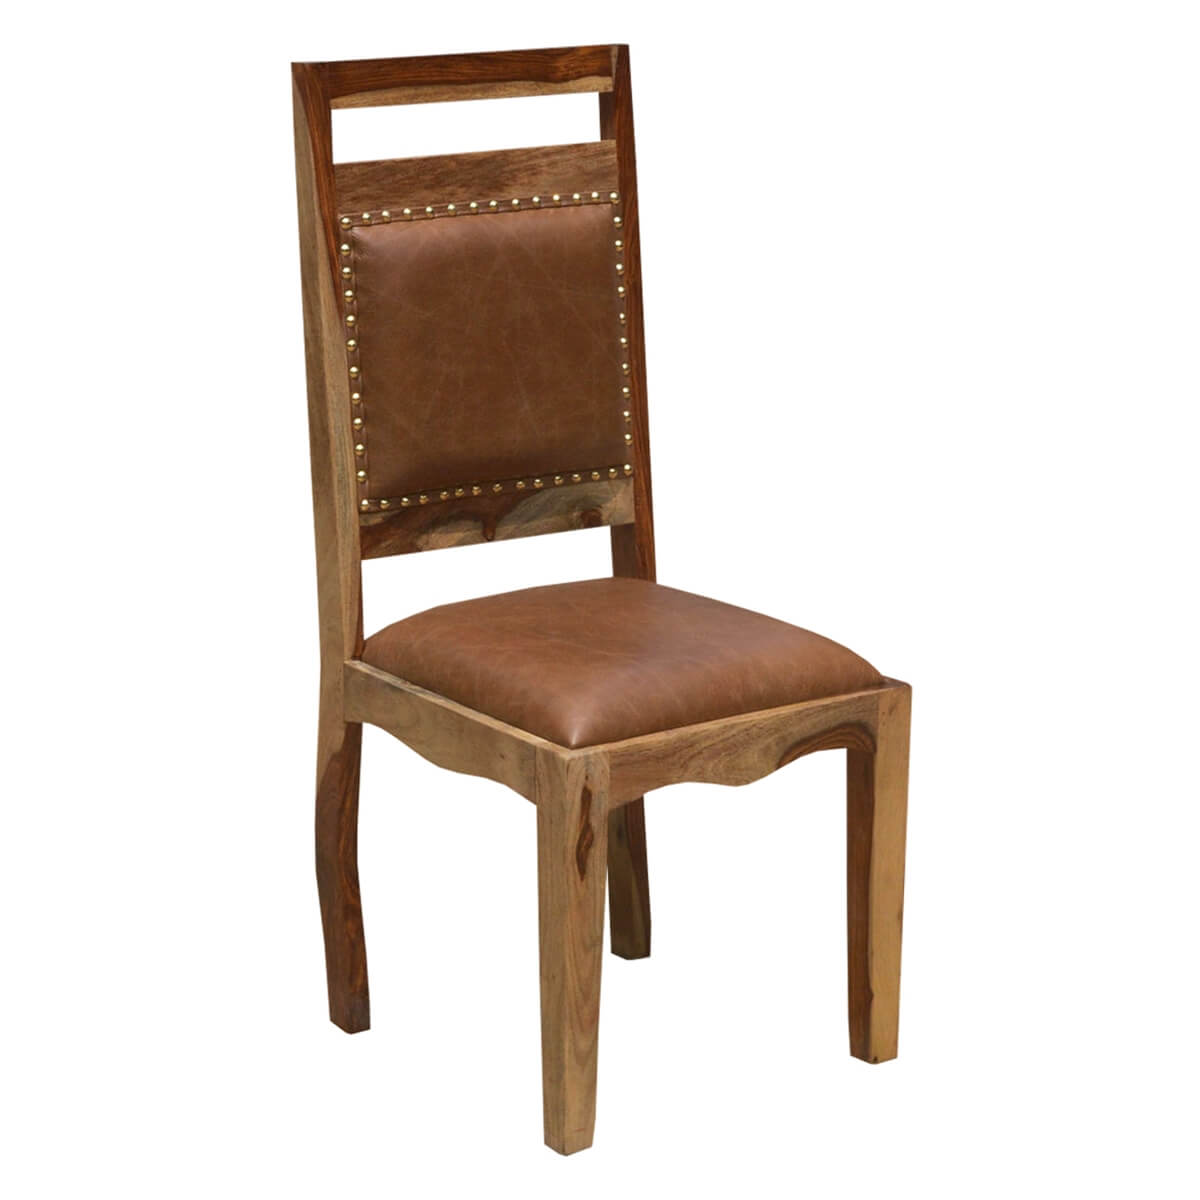 Rustic Dining Chairs Transitional Rustic Solid Wood And Leather Dining Chair